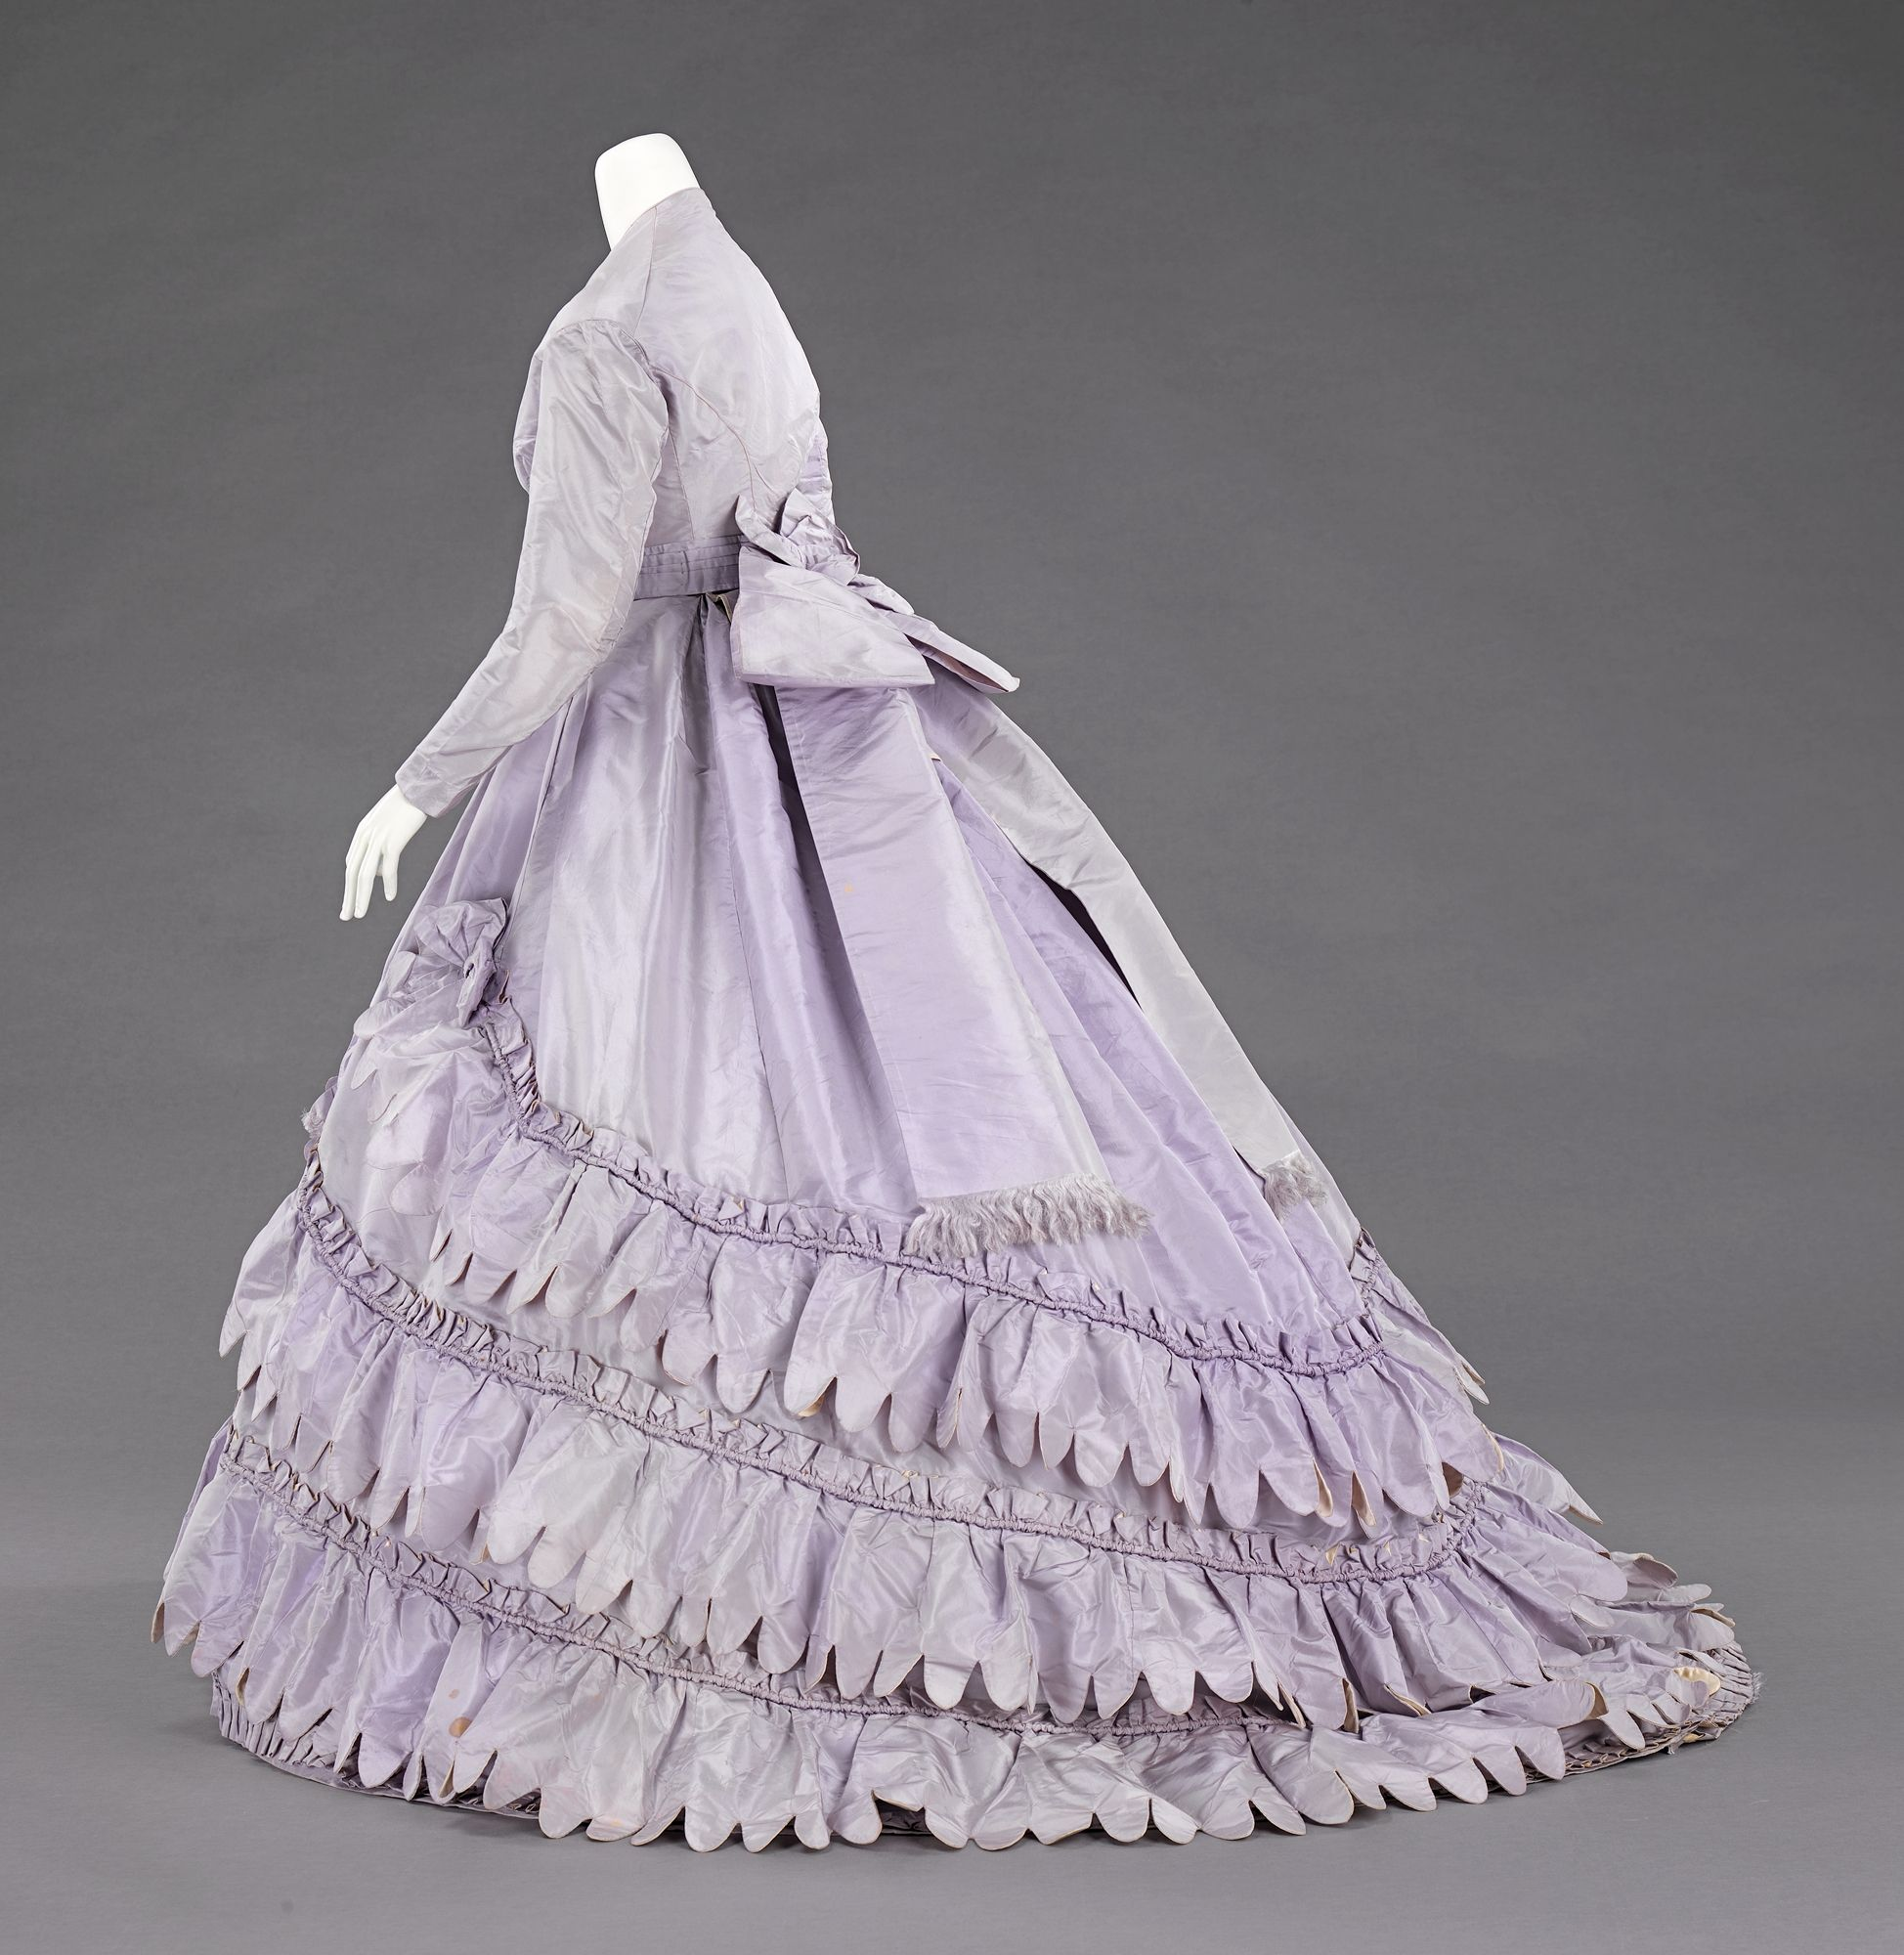 The female silhouette of the middle of the 19th century consisted of a fitted corseted bodice and wide full skirts.  The conical skirts developed between the 1830s, when the high waist of the Empire silhouette was lowered and the skirts became more bell shaped, to the late 1860s, when the fullness of the skirts were pulled to the back and the bustle developed